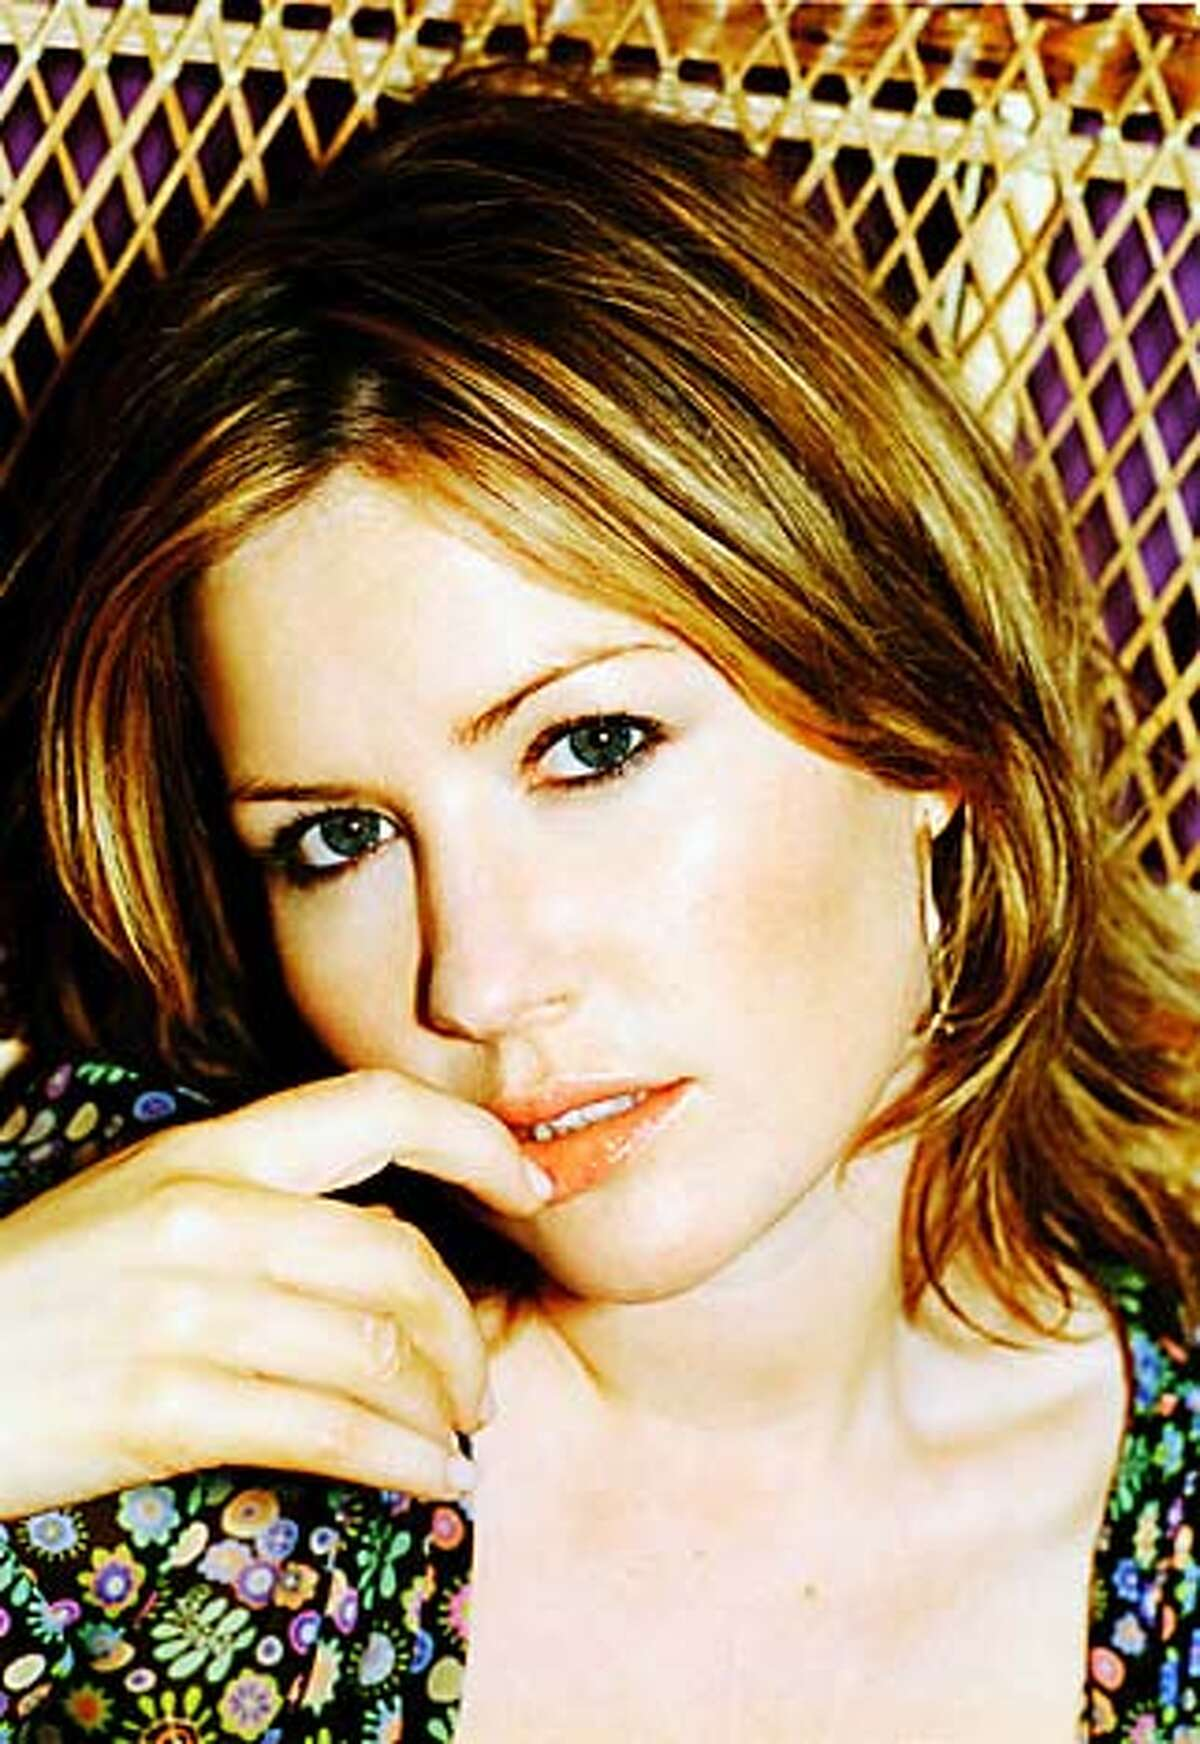 For POPQUIZ05, datebook ; Dido ; no further caption info supplied ; 7/31/03 in . / HO